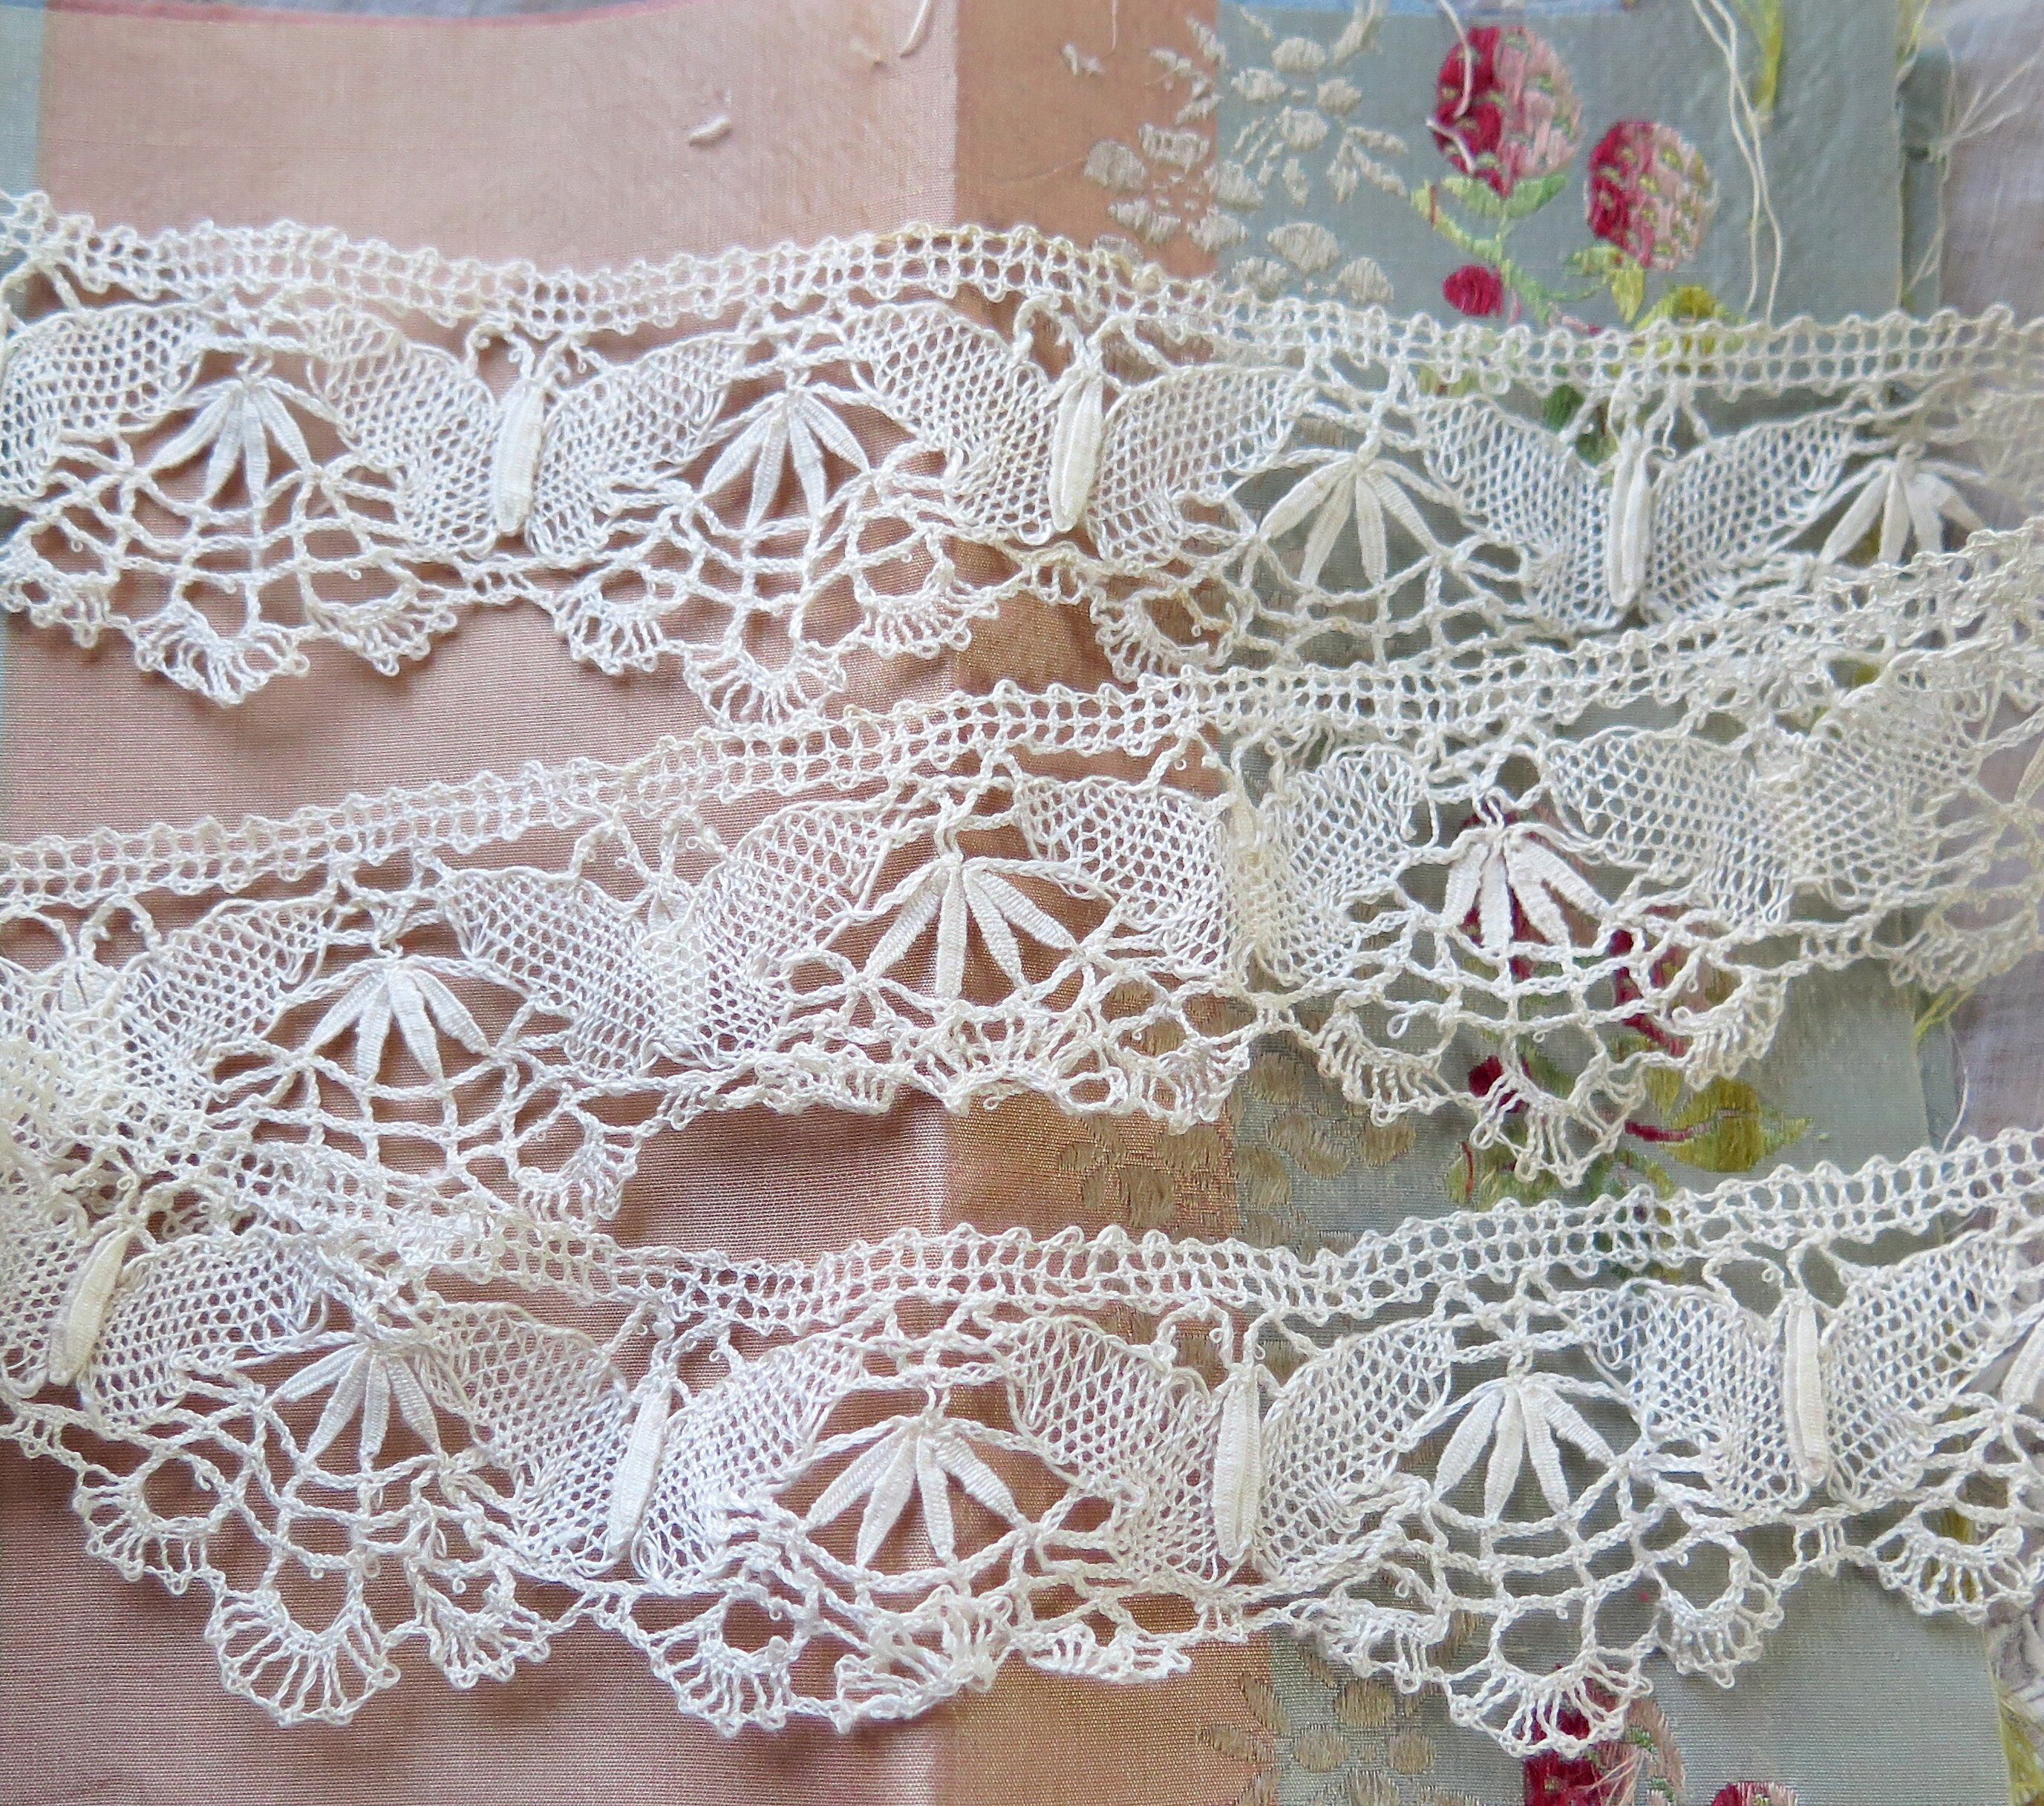 Excited To Share The Latest Addition To My Etsy Shop Antique Cluny Bobbin Lace Trim With Butterfly Motif 2 6 Yards Handmade Handmade Lace Bobbin Lace